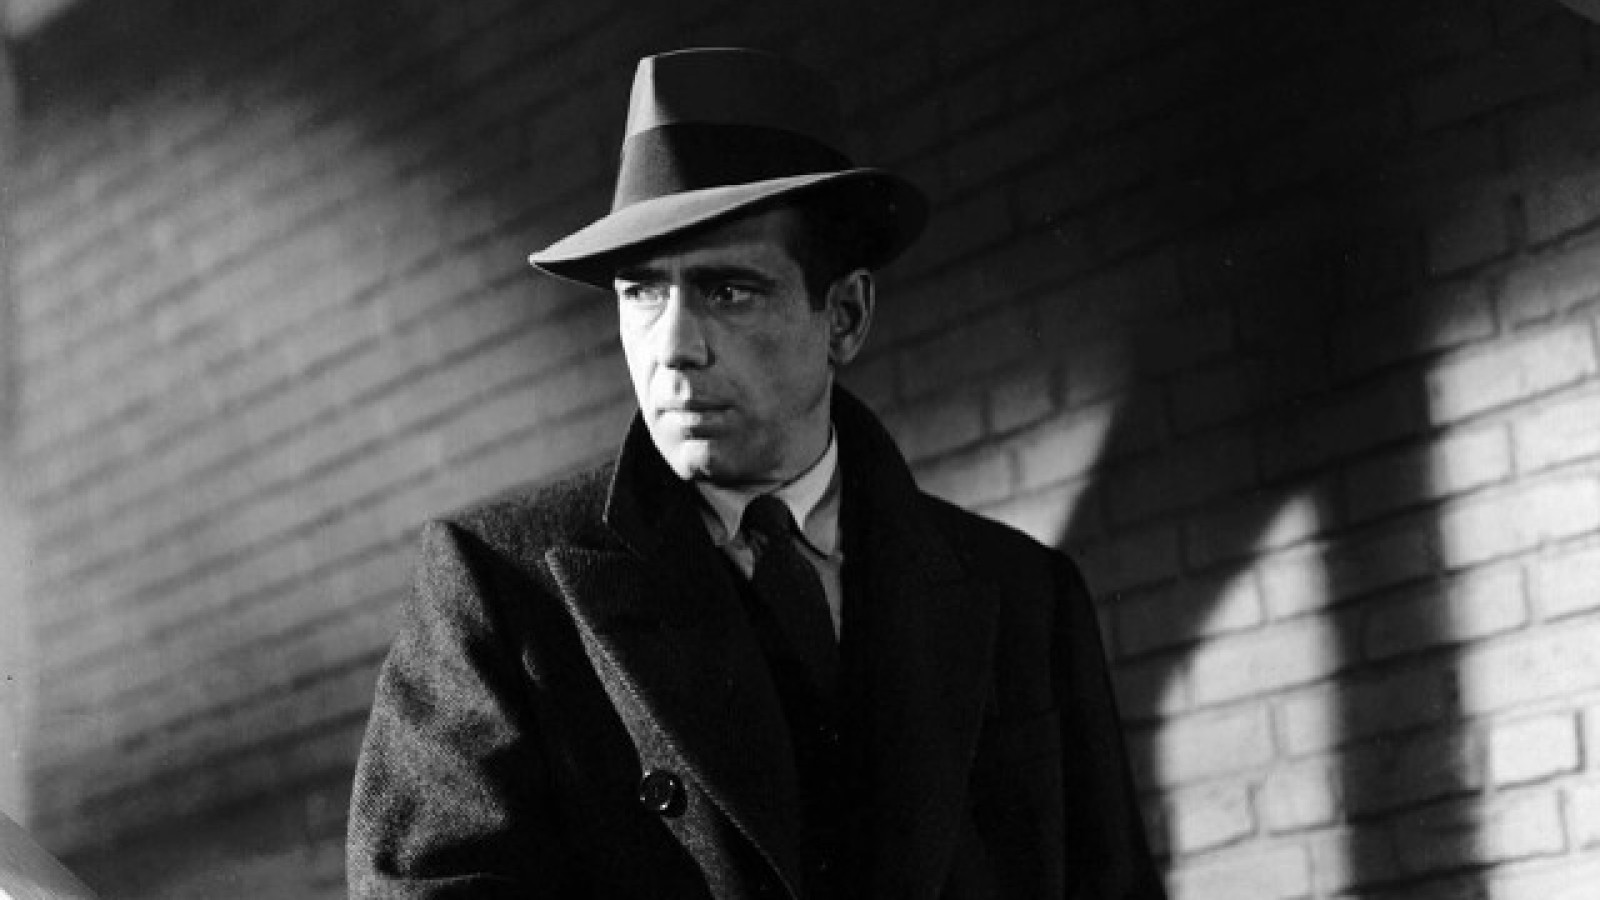 the anti hero characteristics of samuel spade in the maltese falcon a novel by dashiell hammett Consider this ment in relation to chandler's 'the big sleep' and hammett's 'the maltese falcon a male anti-hero dashiell hammett's celebrated novel the.